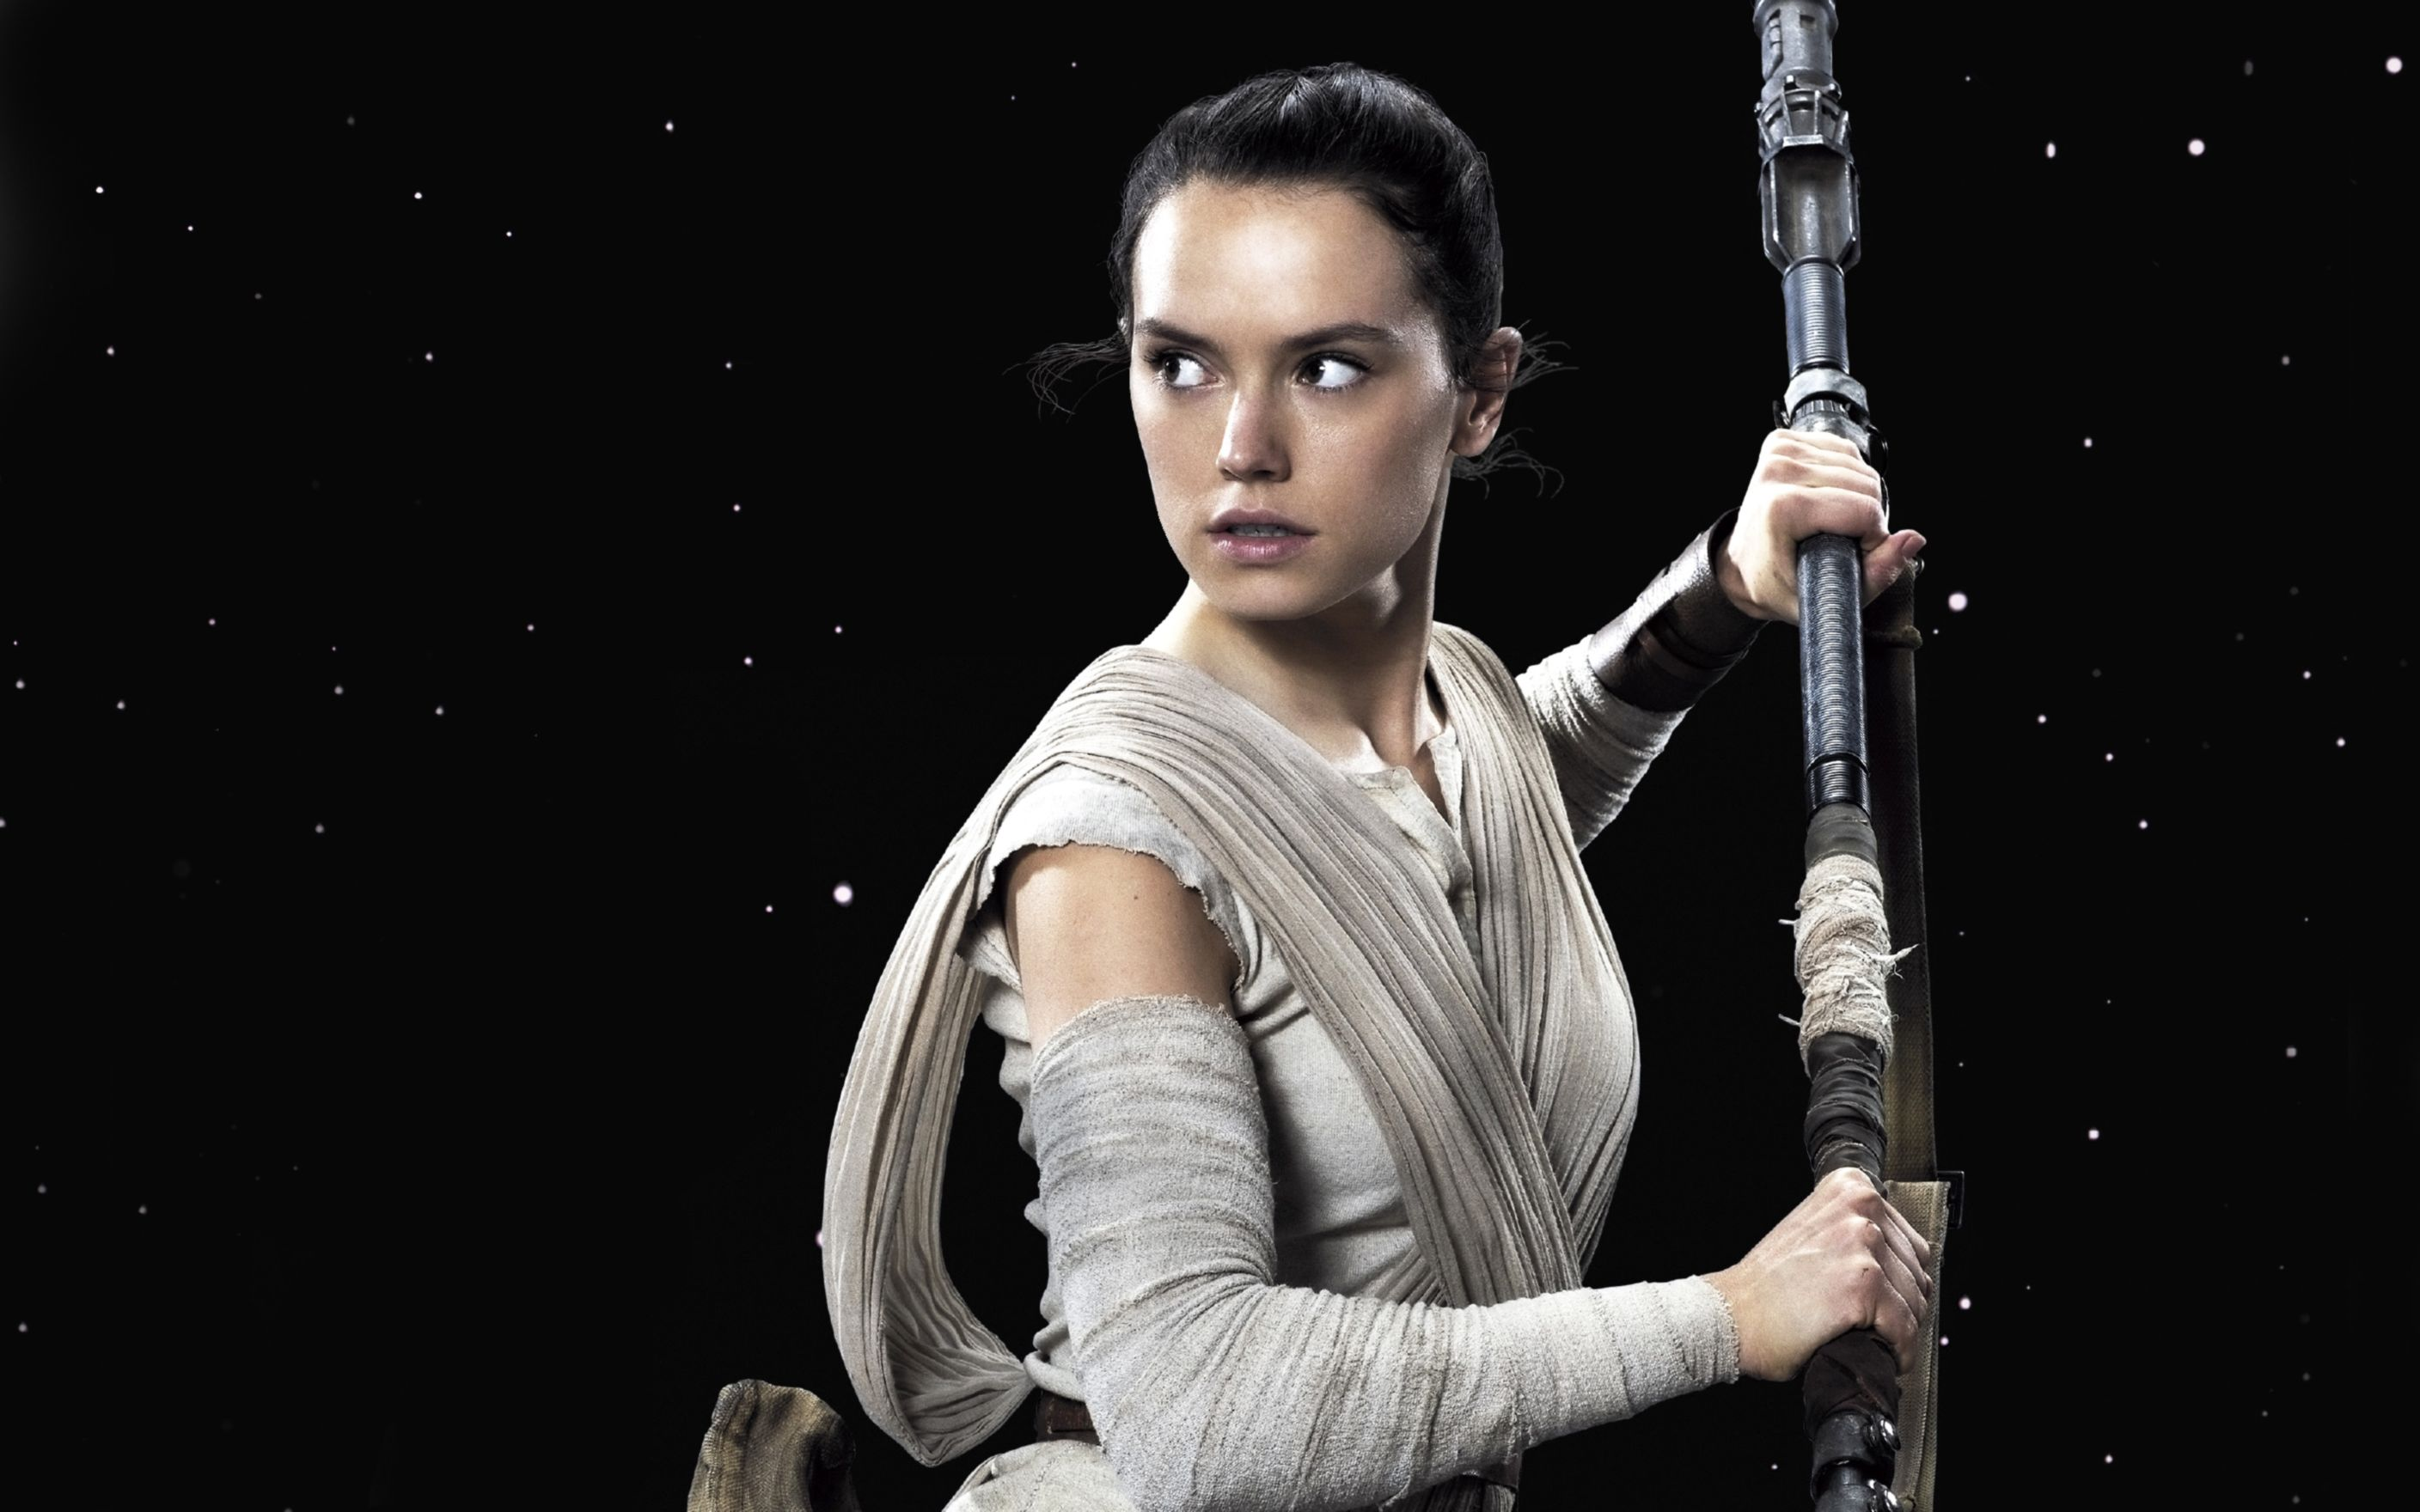 Download free HD Daisy Ridley Rey Star Wars The Force Awakens Wide Wallpaper, image